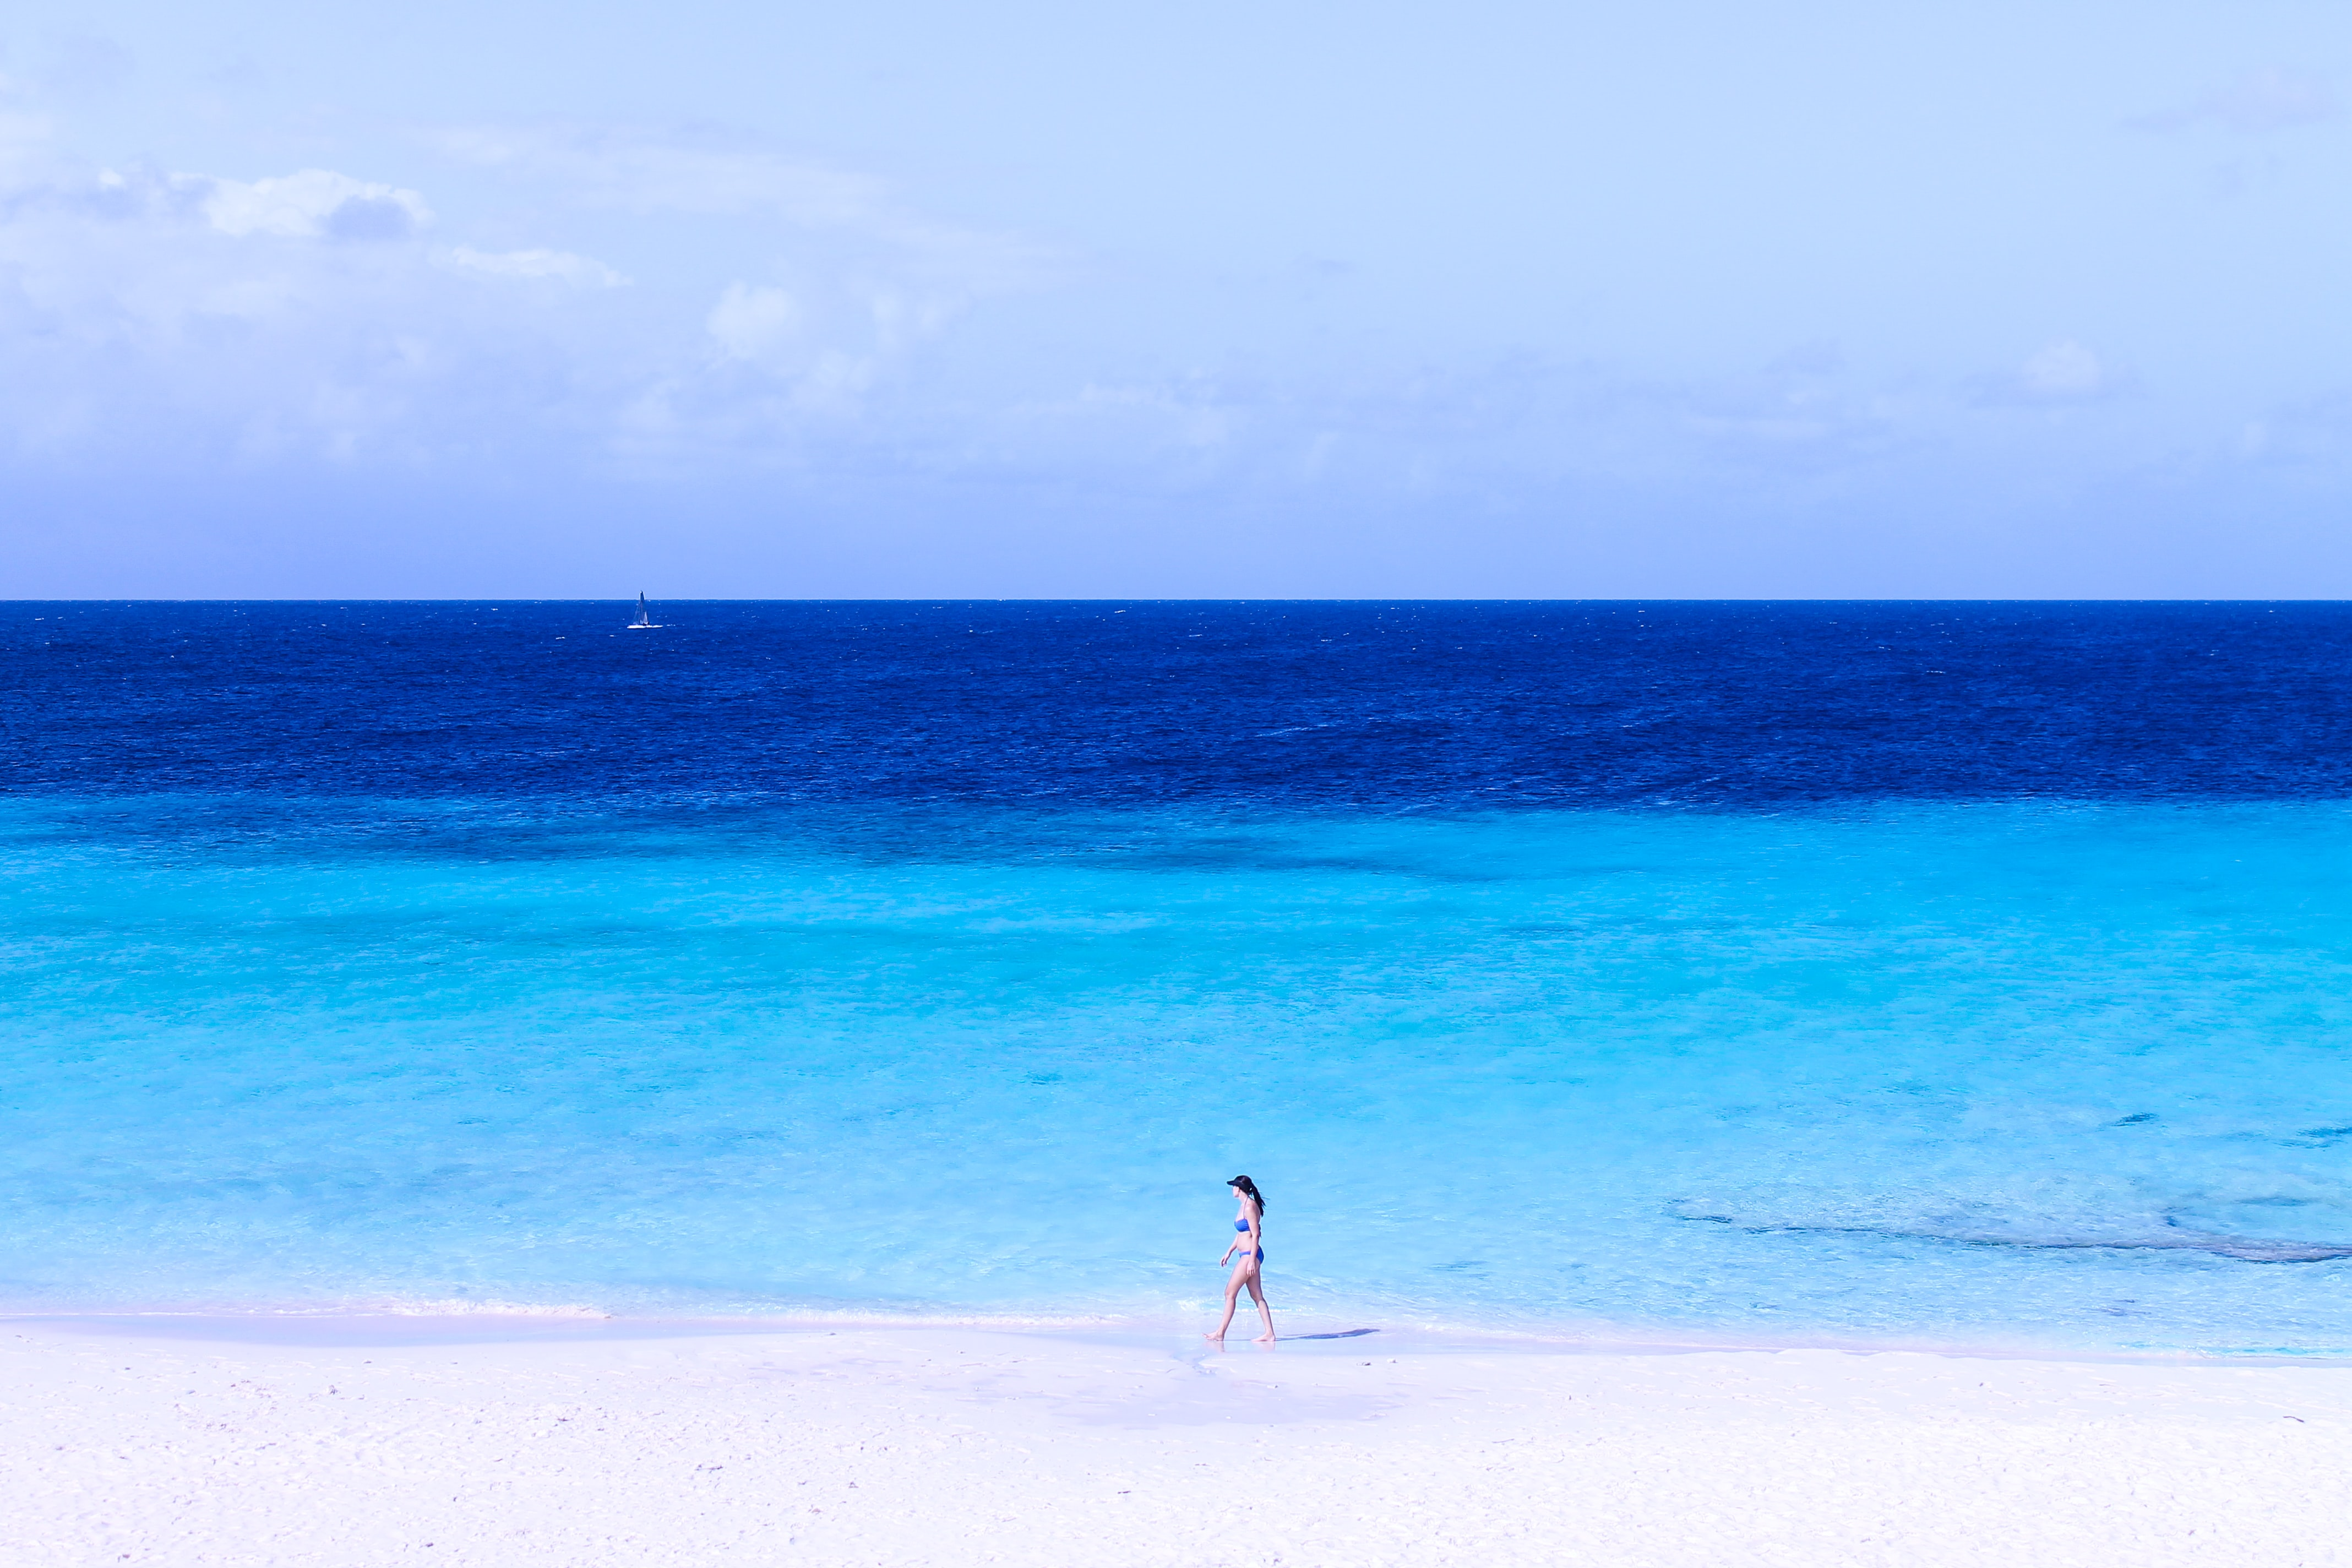 A lone woman in a swimsuit walking on the edge of a beach with deep blue sea stretching to the horizon